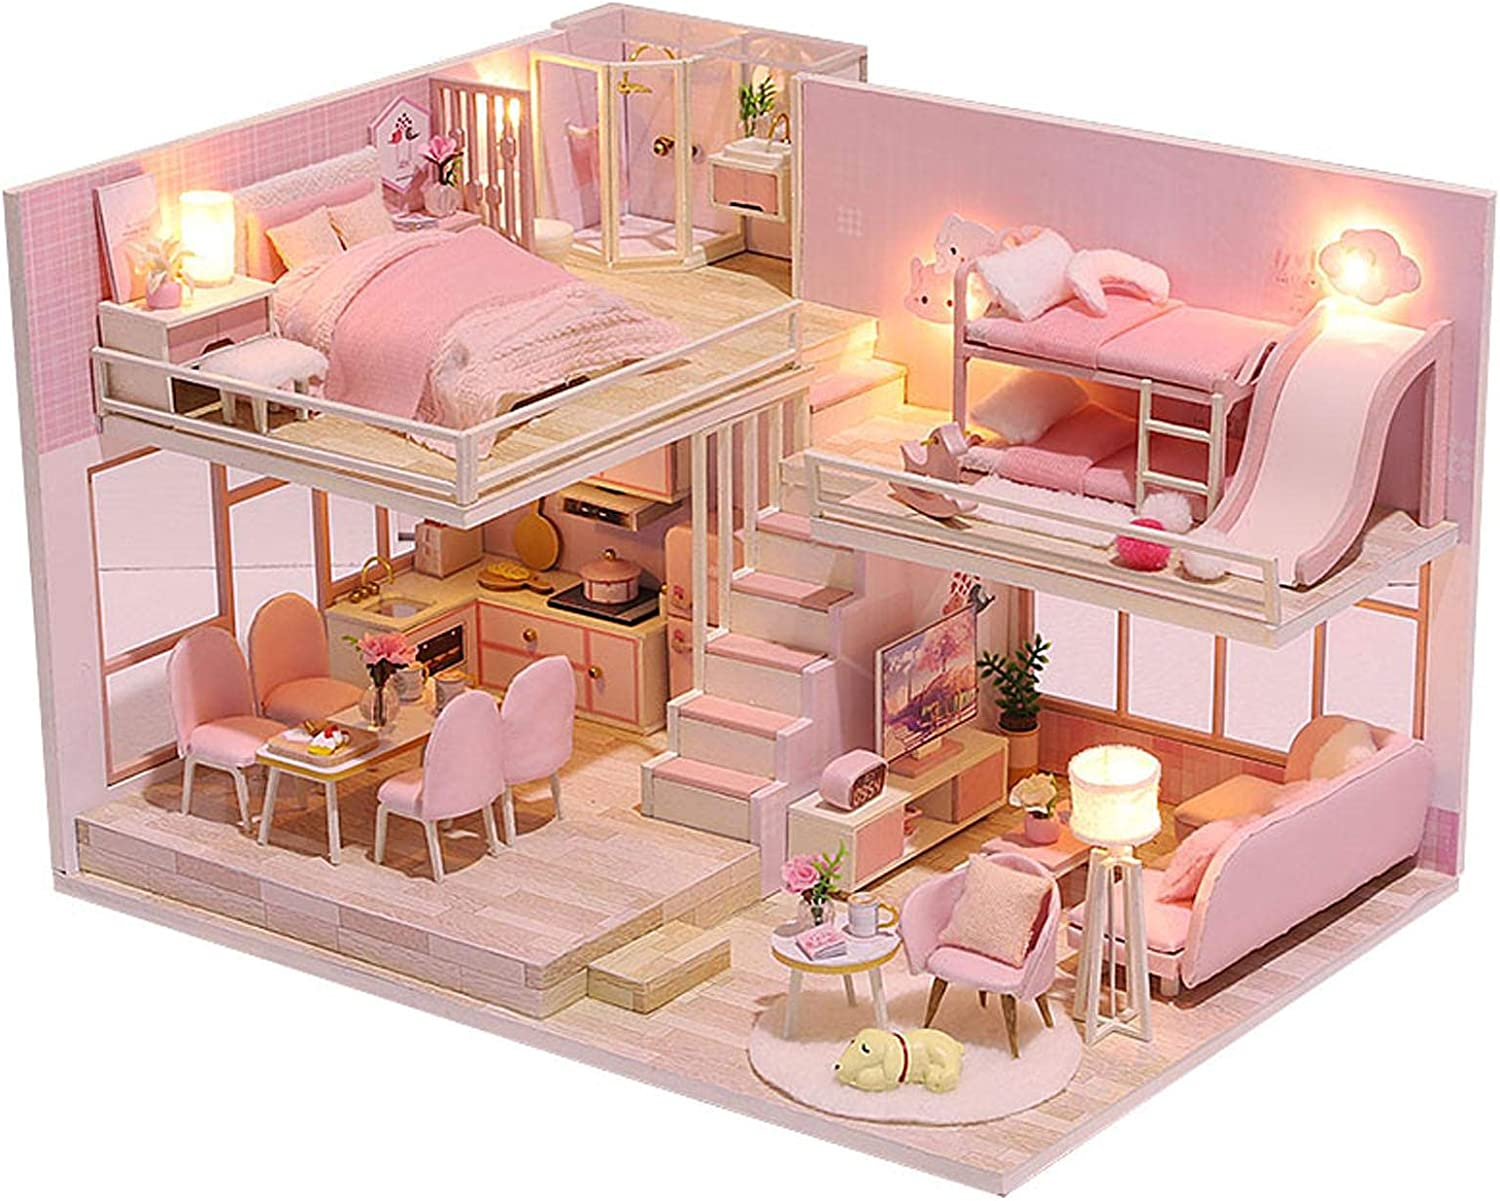 Tiny House Building Kit Sweet Pink Ranking TOP14 Personalis It is very popular Apartment Romantic